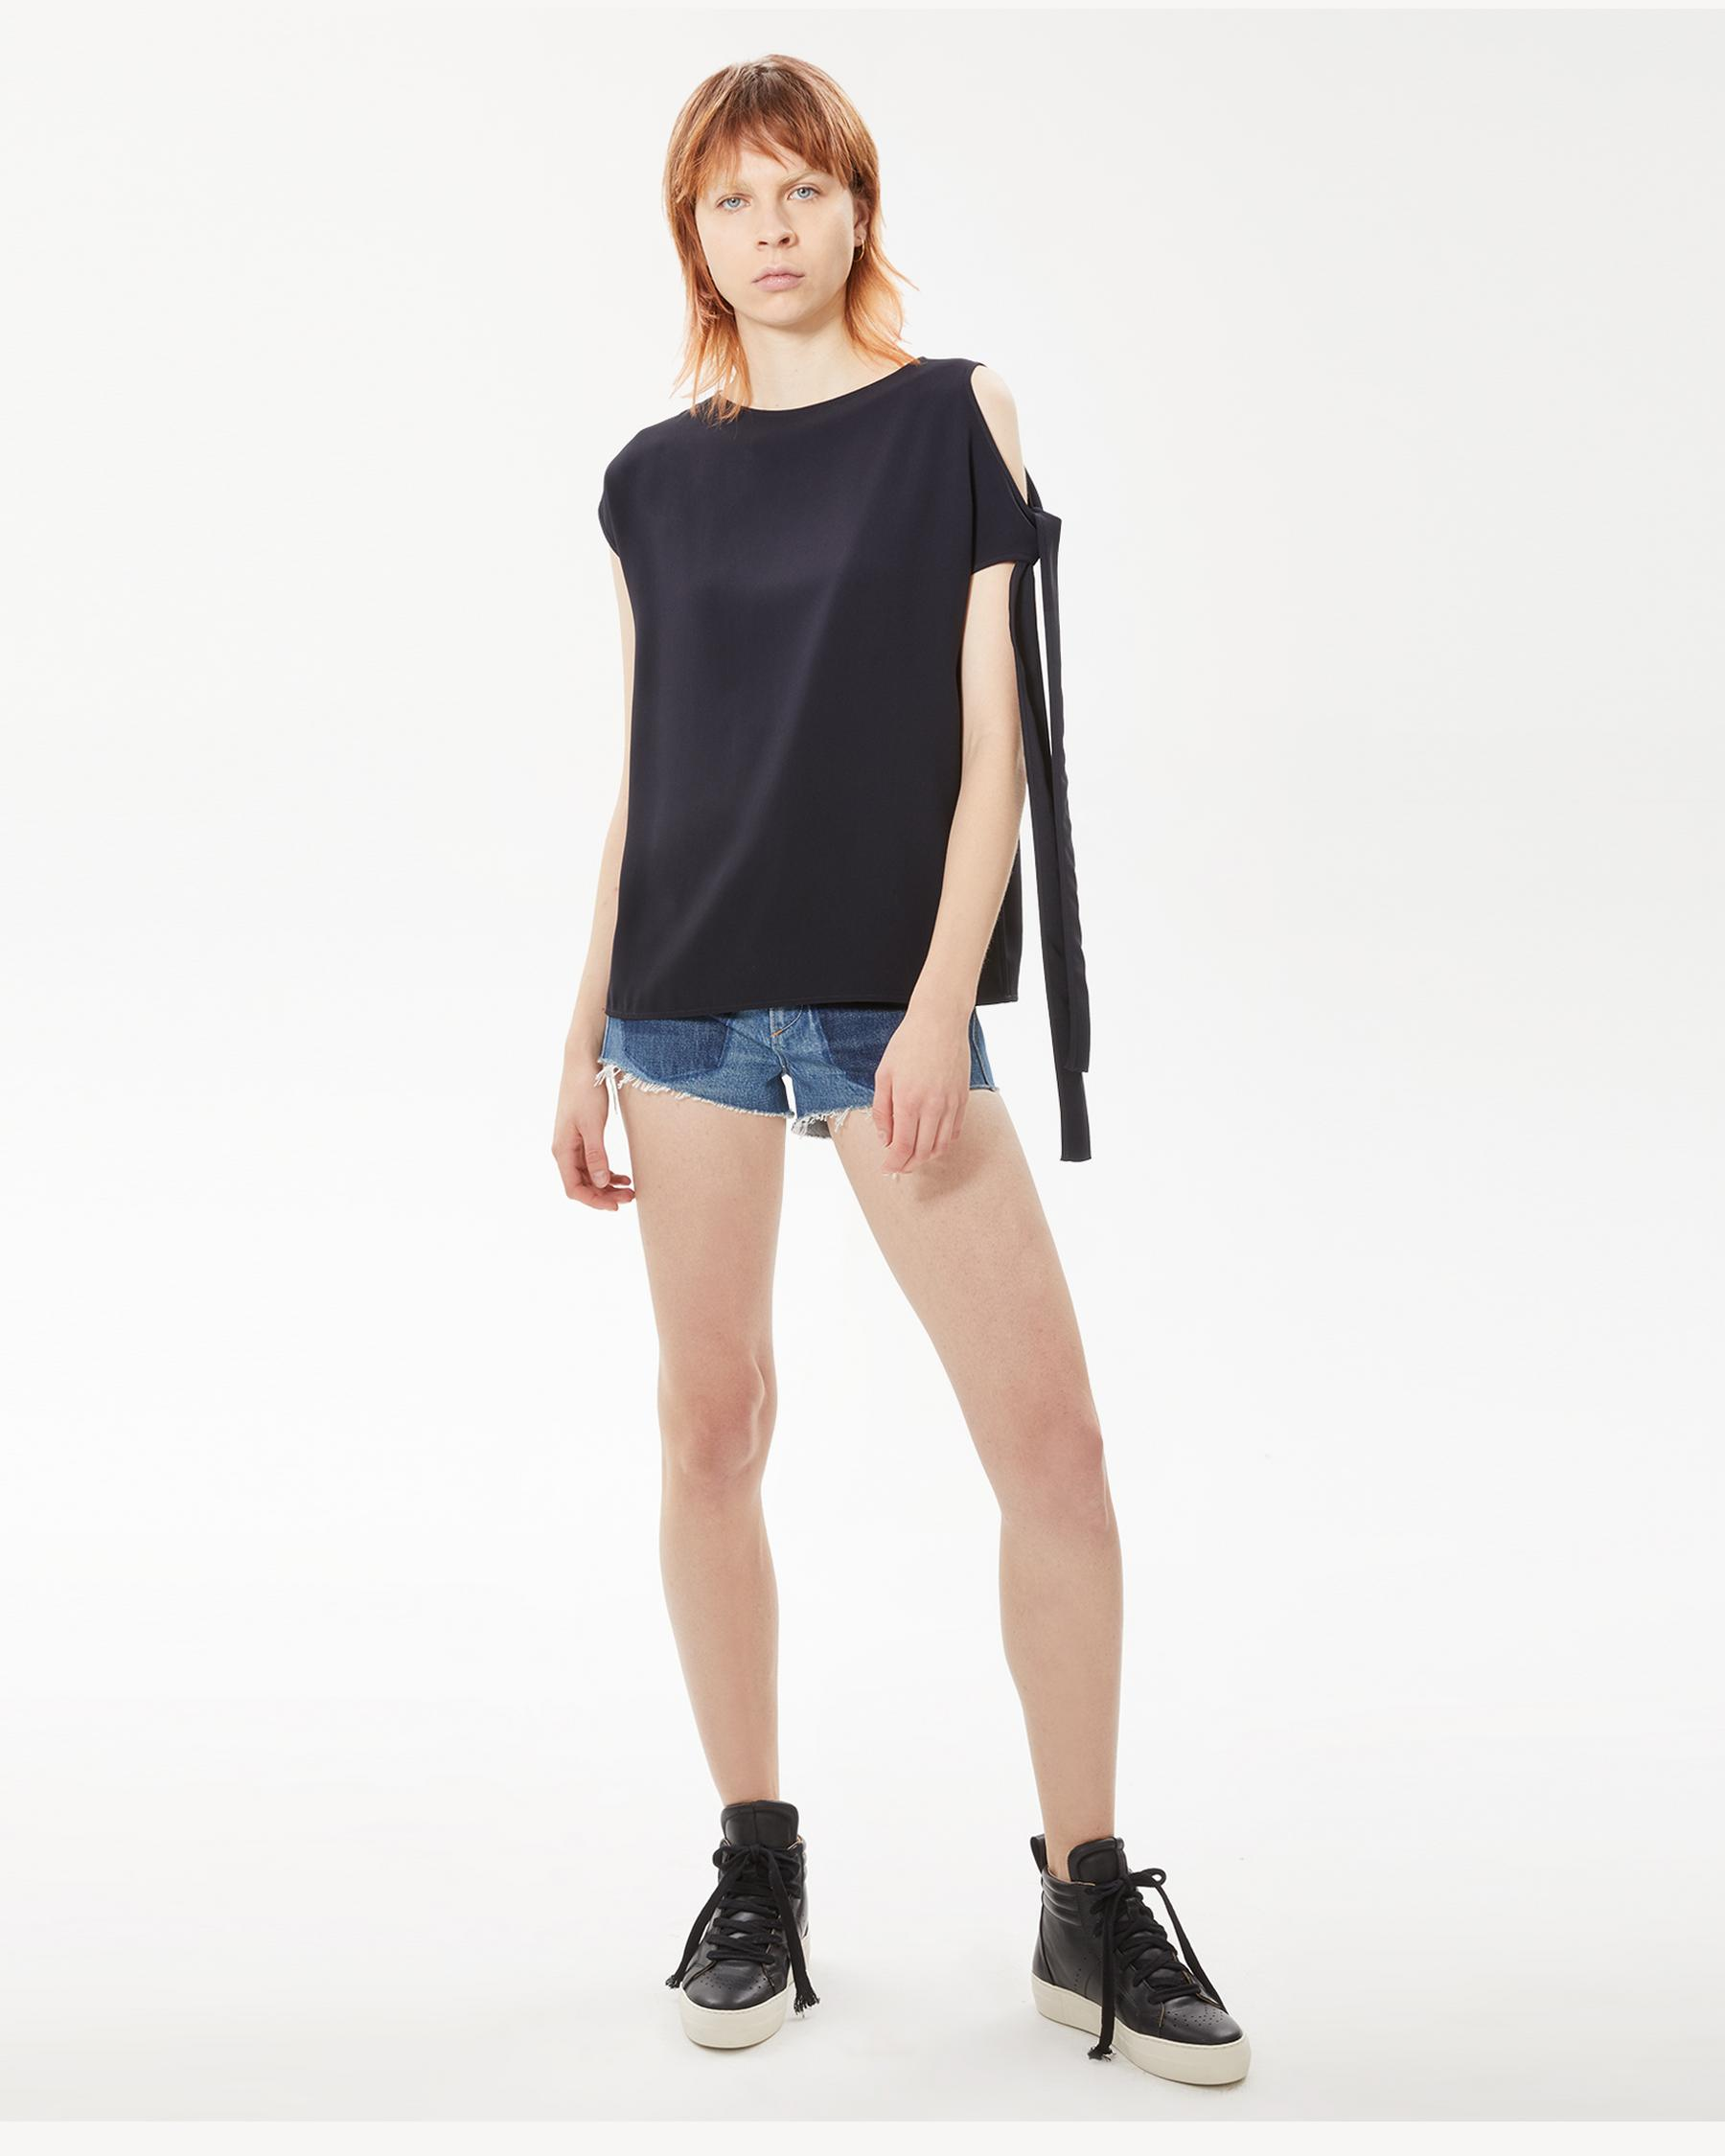 Helmut Lang 27 - Sleeve Tie Top - Navy